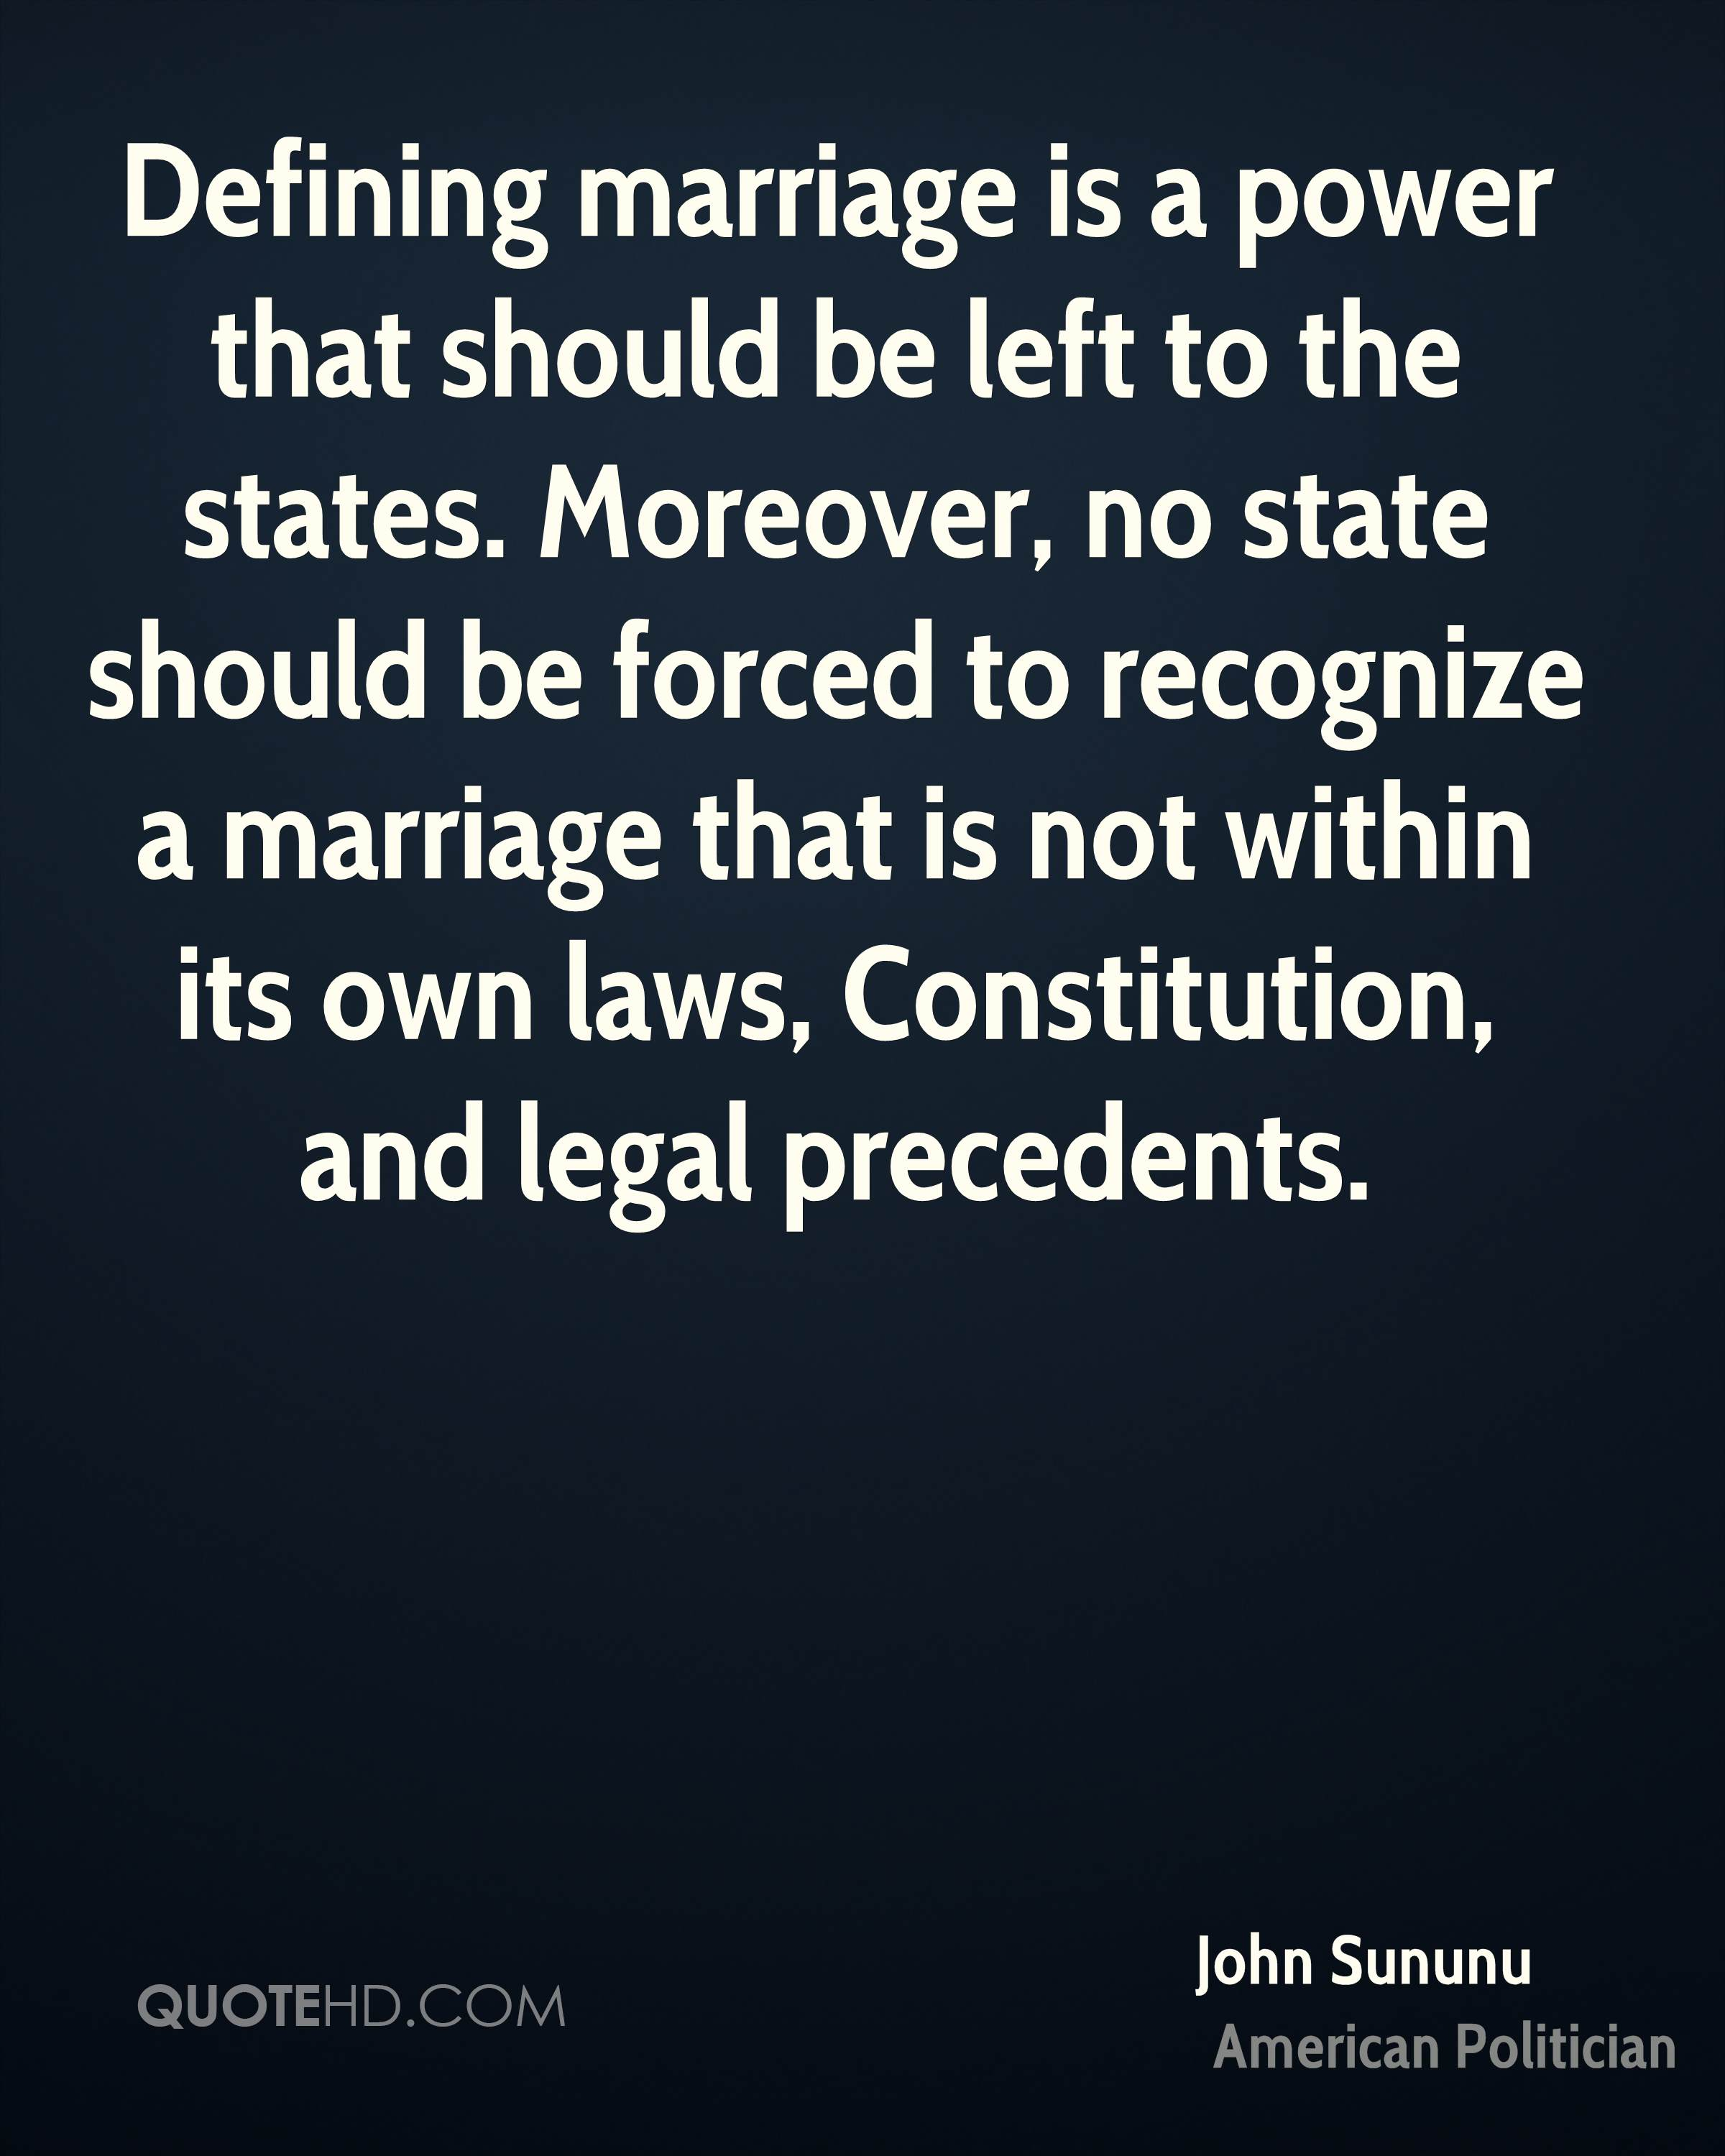 Defining marriage is a power that should be left to the states. Moreover, no state should be forced to recognize a marriage that is not within its own laws, Constitution, and legal precedents.